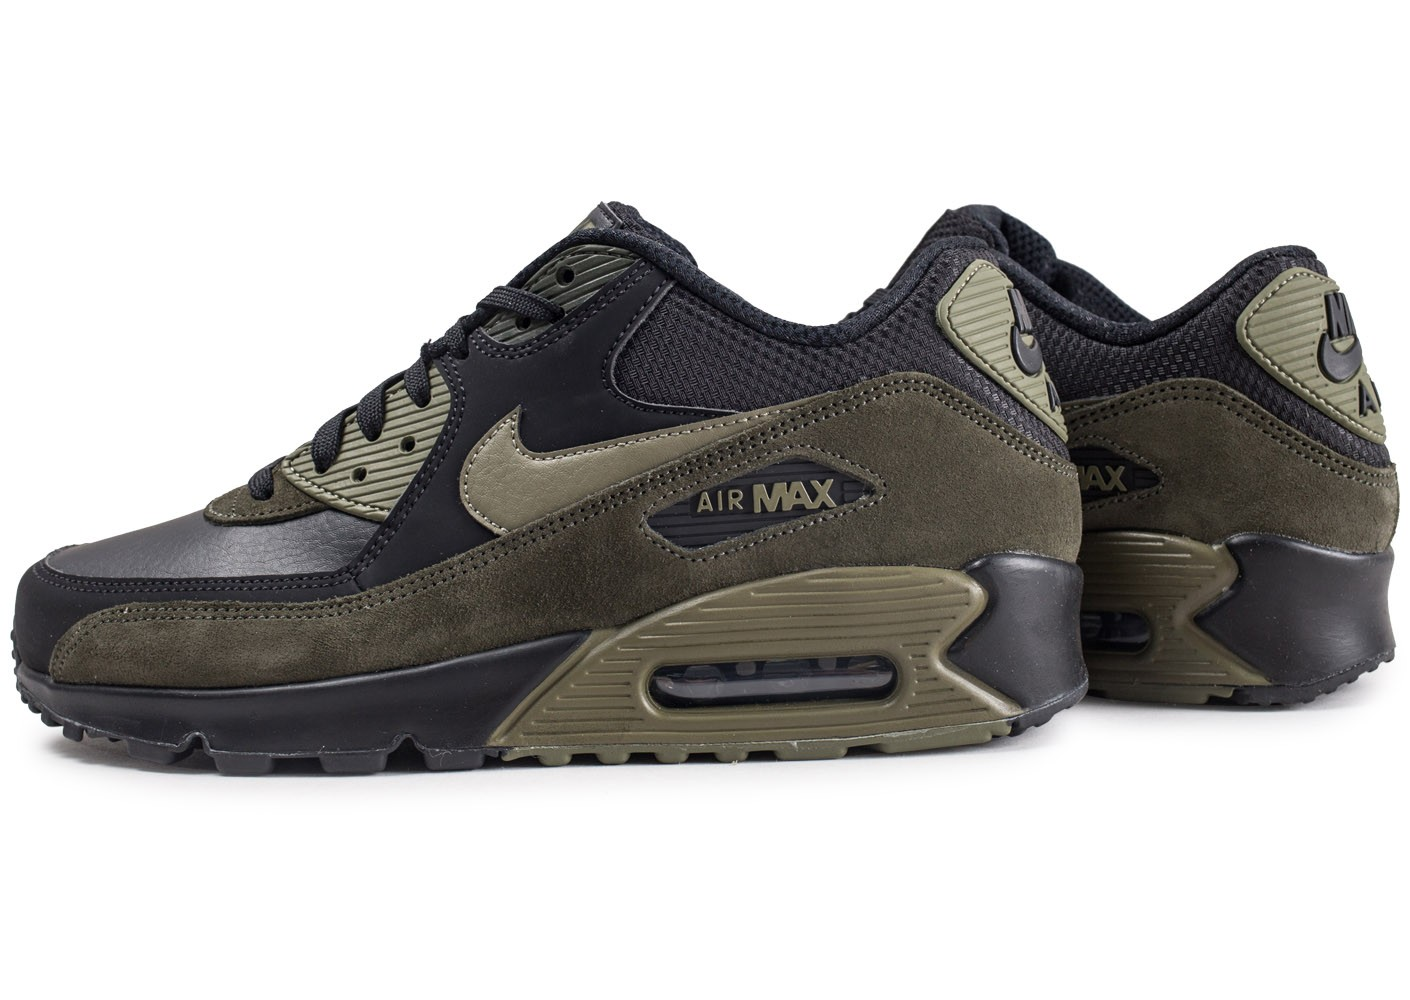 Nike Air Max 90 Leather noire et kaki Chaussures Baskets